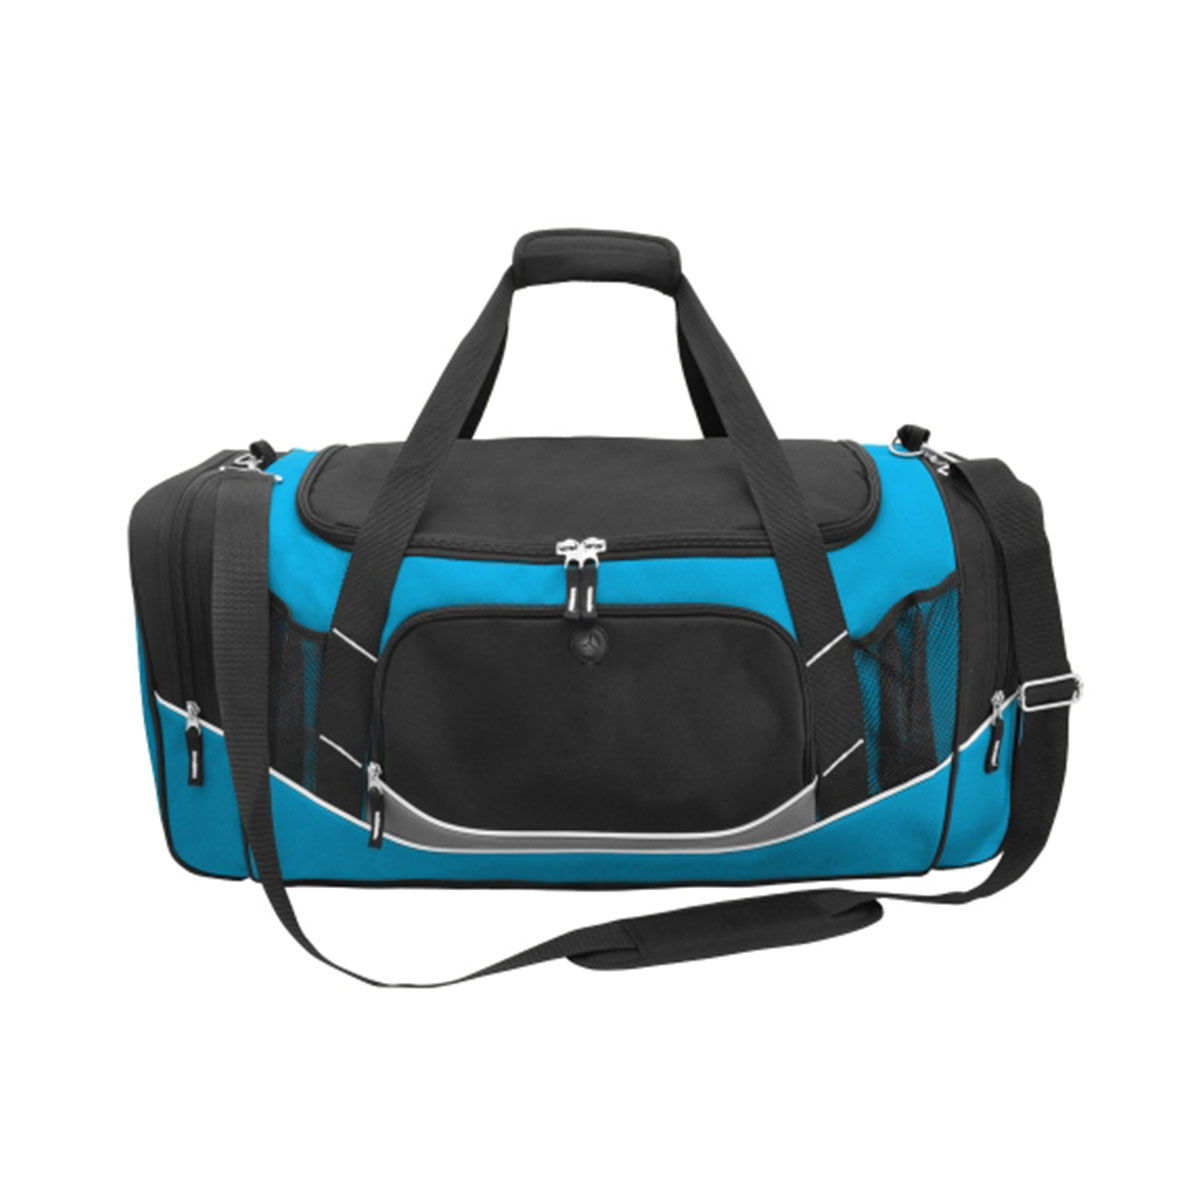 Atlantis Sports Bag-Black / Aqua / White / Charcoal